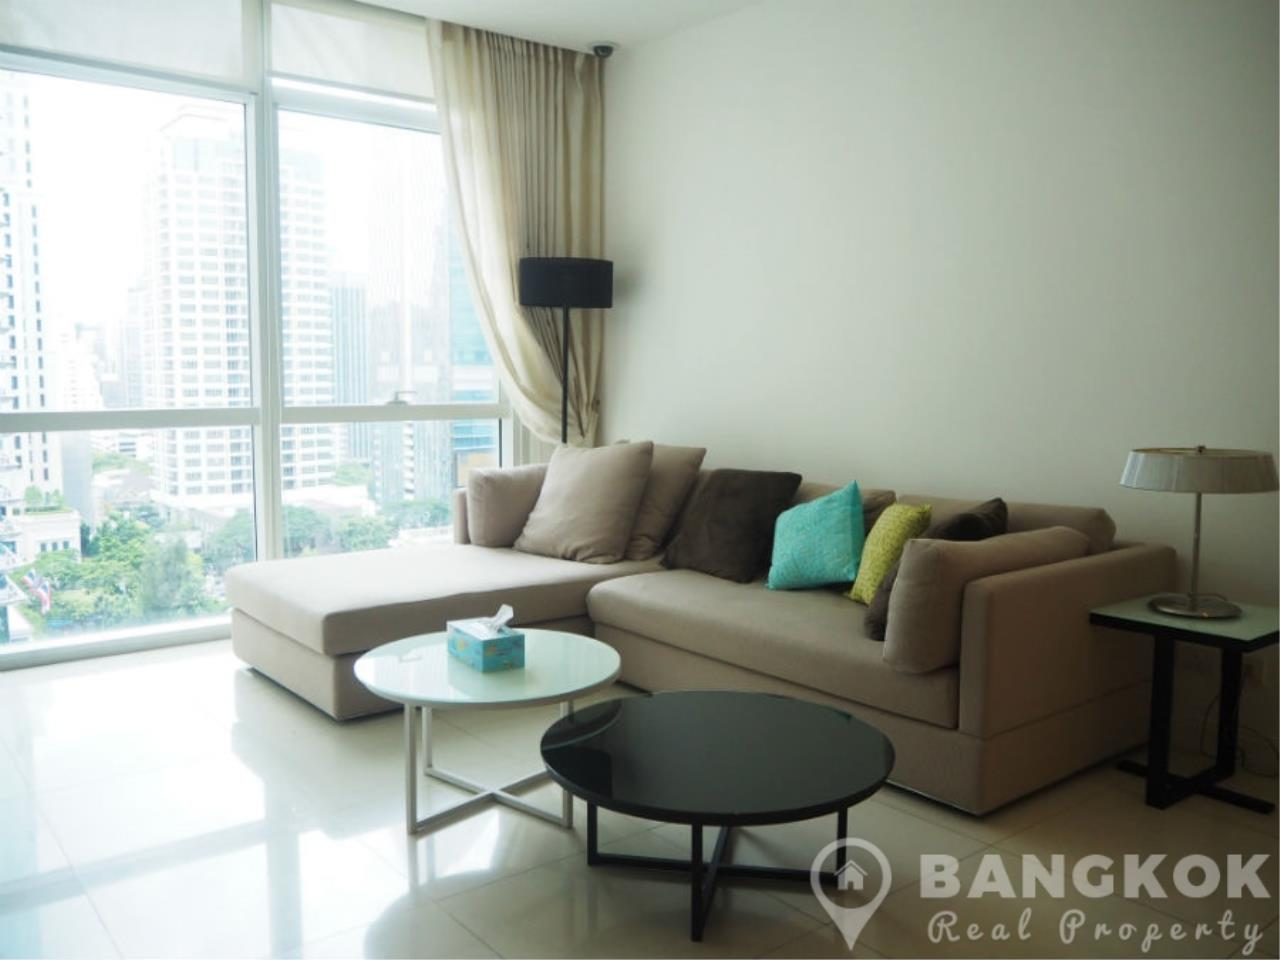 Bangkok Real Property Agency's Athenee Residence | Spacious Modern 2 Bed 2 Bath with Great City Views 1